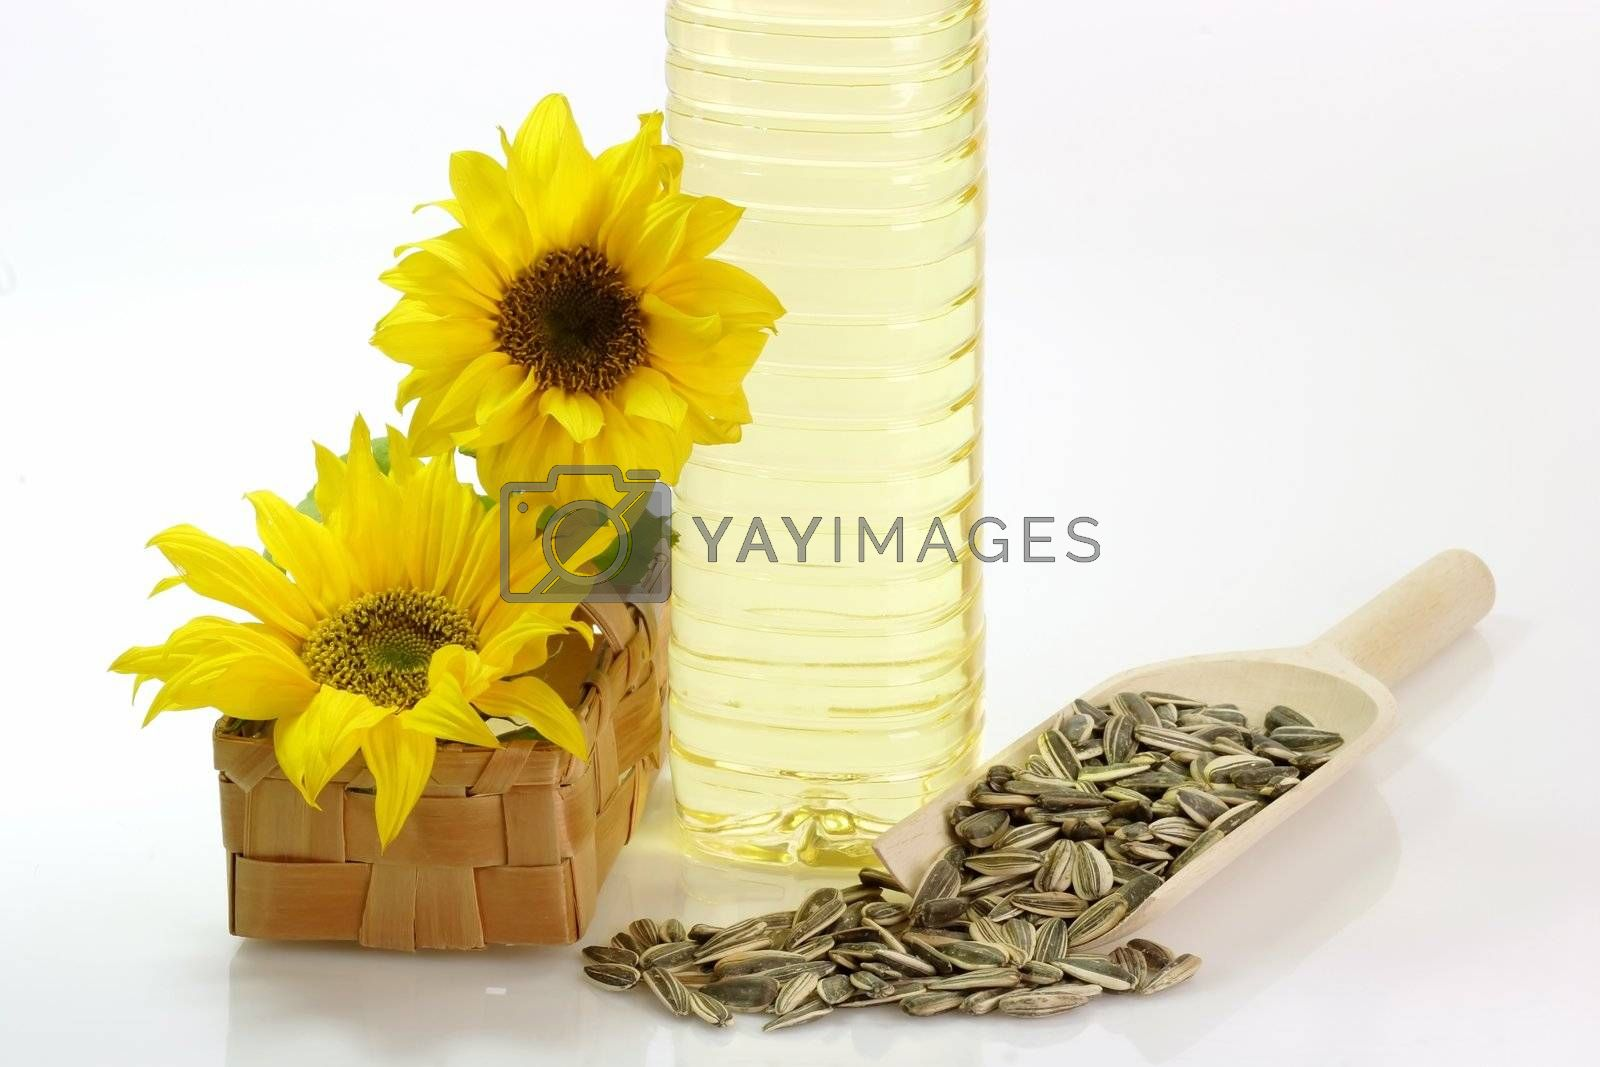 Cooking oil in a plastic bottle with sunflower seeds on white background